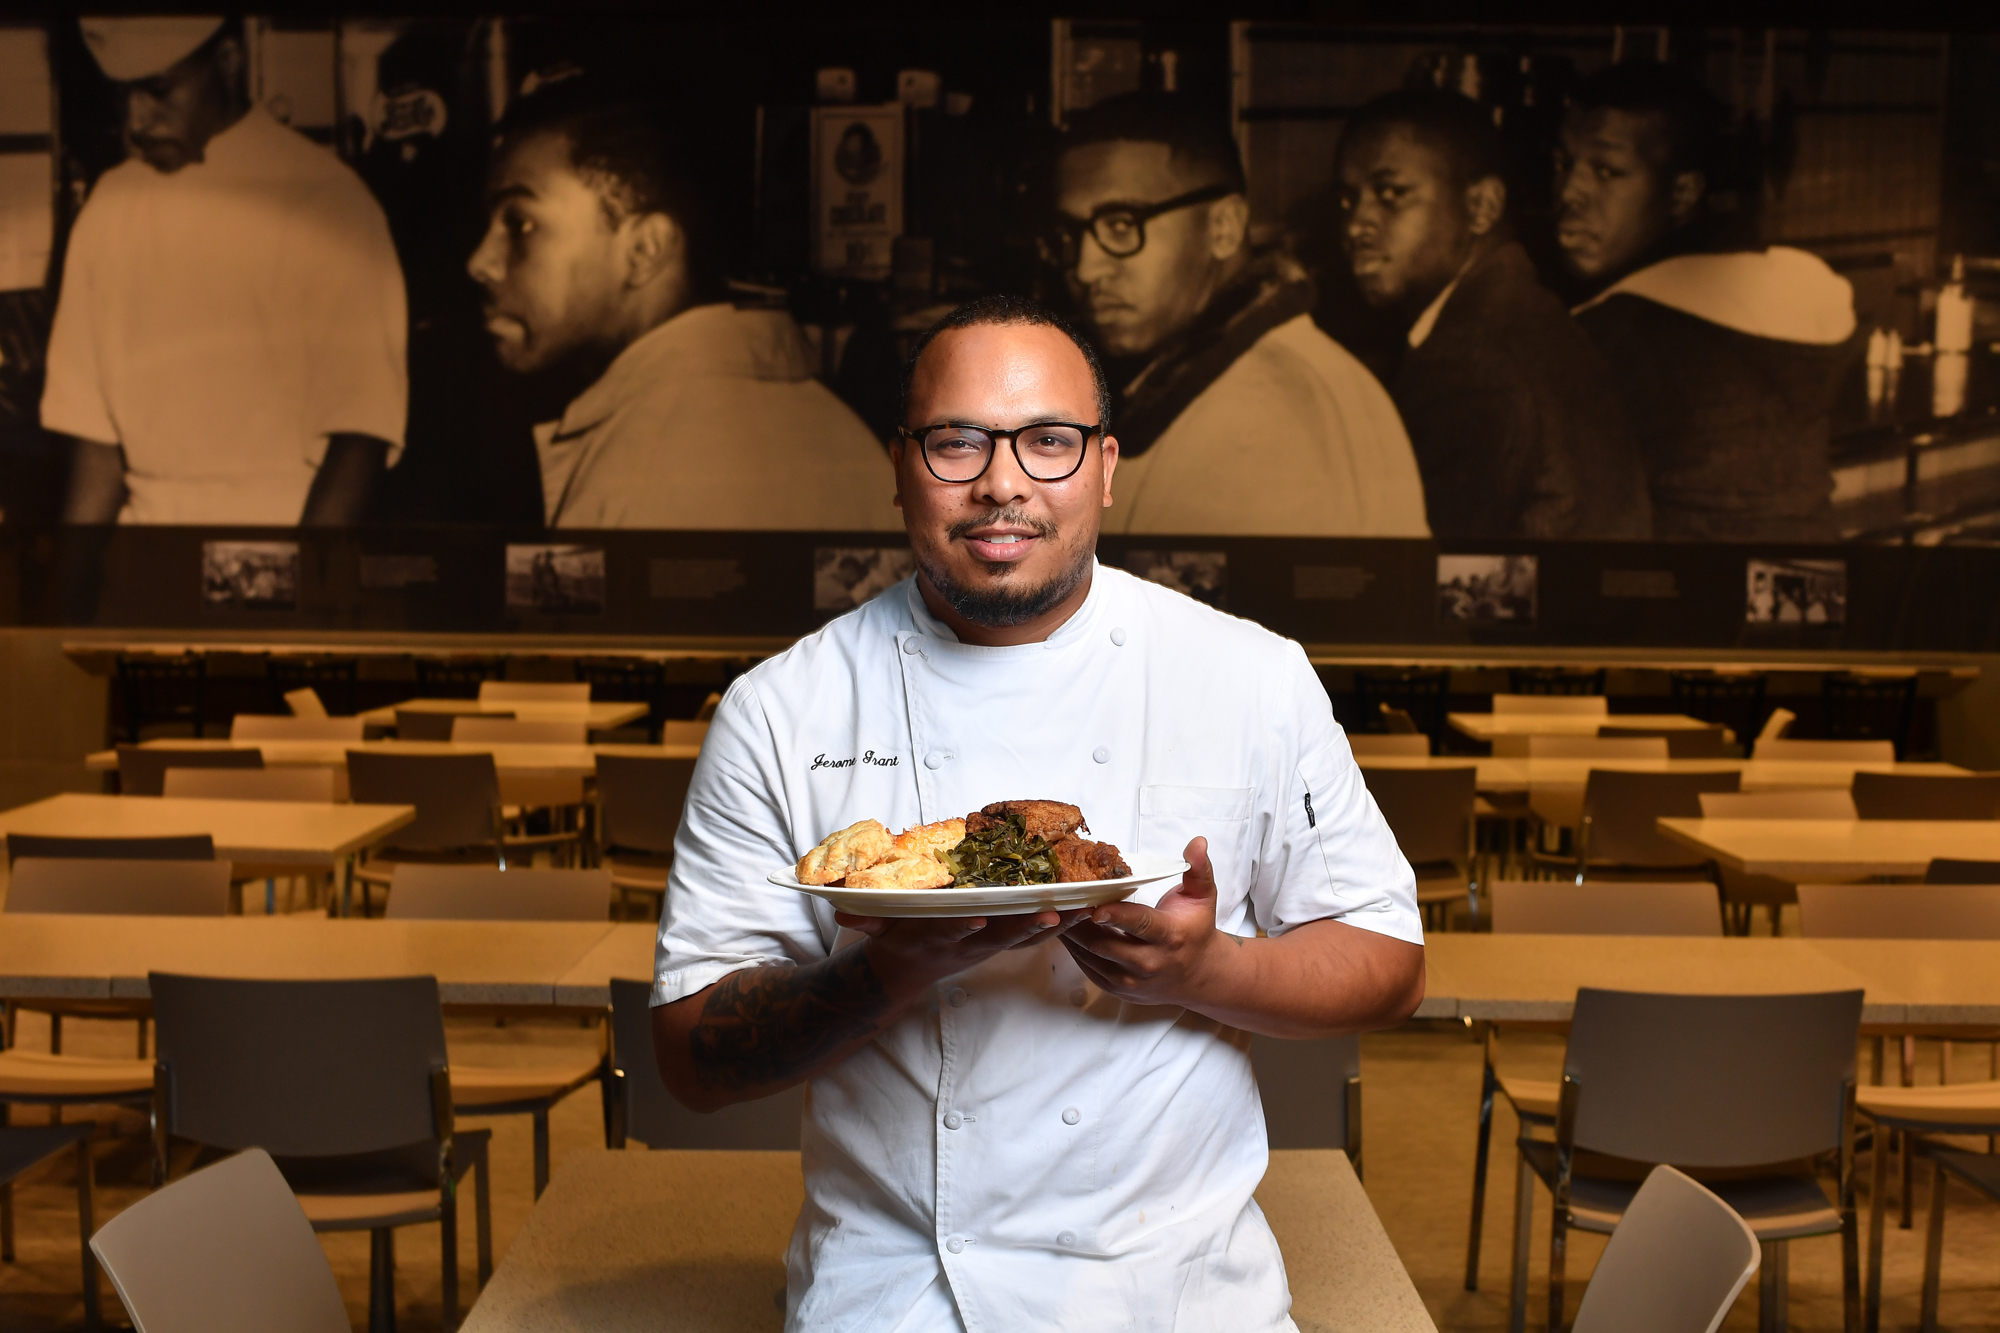 Jerome Grant is the head chef at Sweet Home Cafe, the restaurant at The National African American Museum of History and Culture in Washington, D.C. on September 14, 2016.